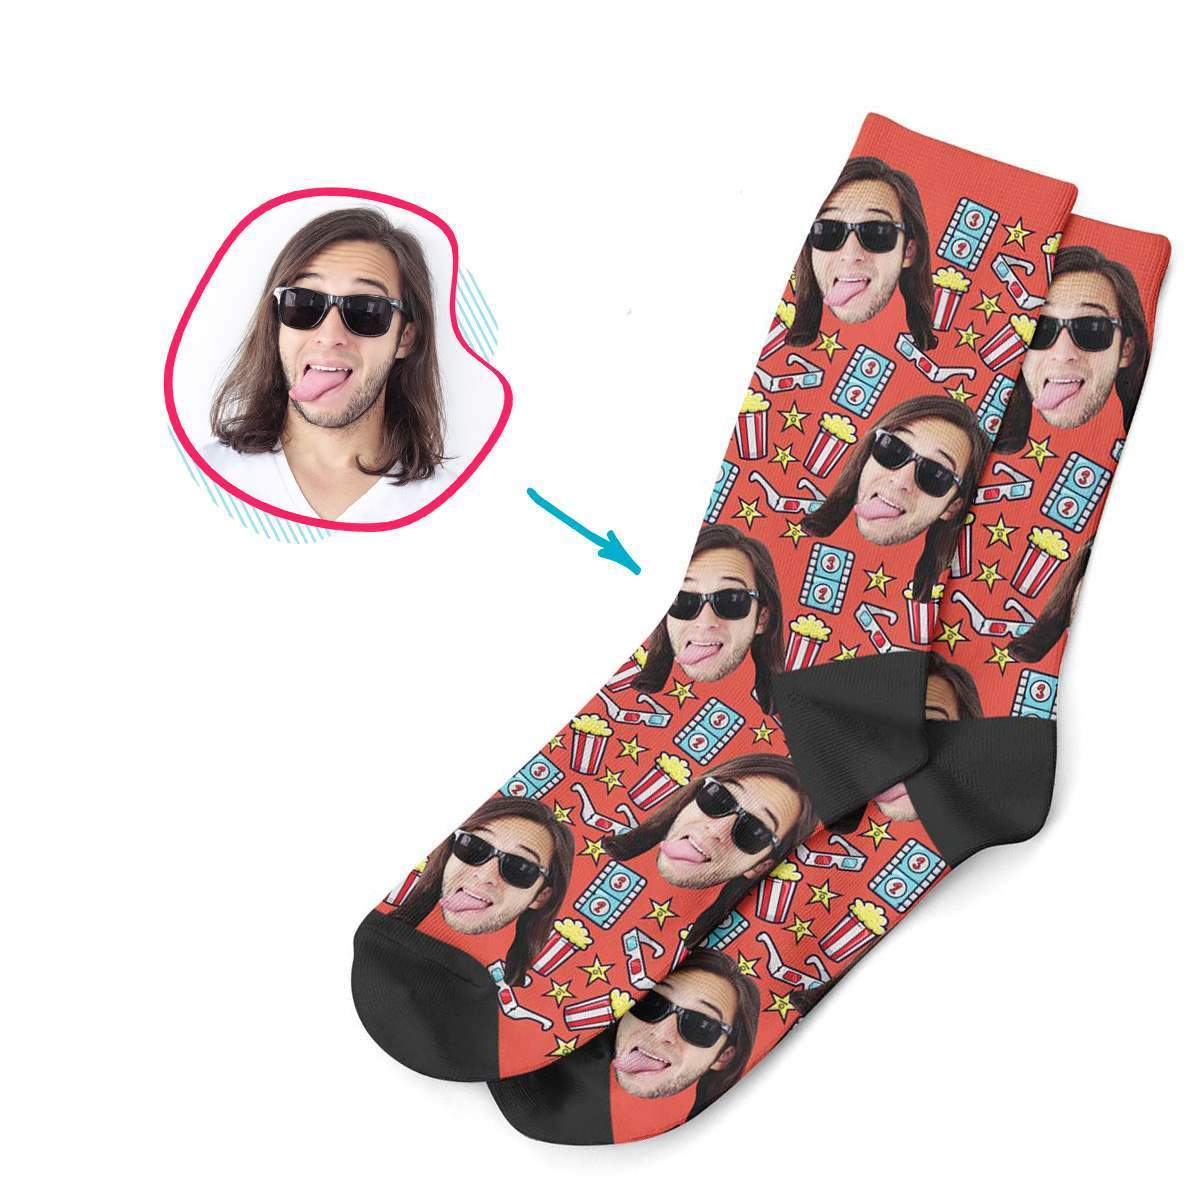 red Movie socks personalized with photo of face printed on them